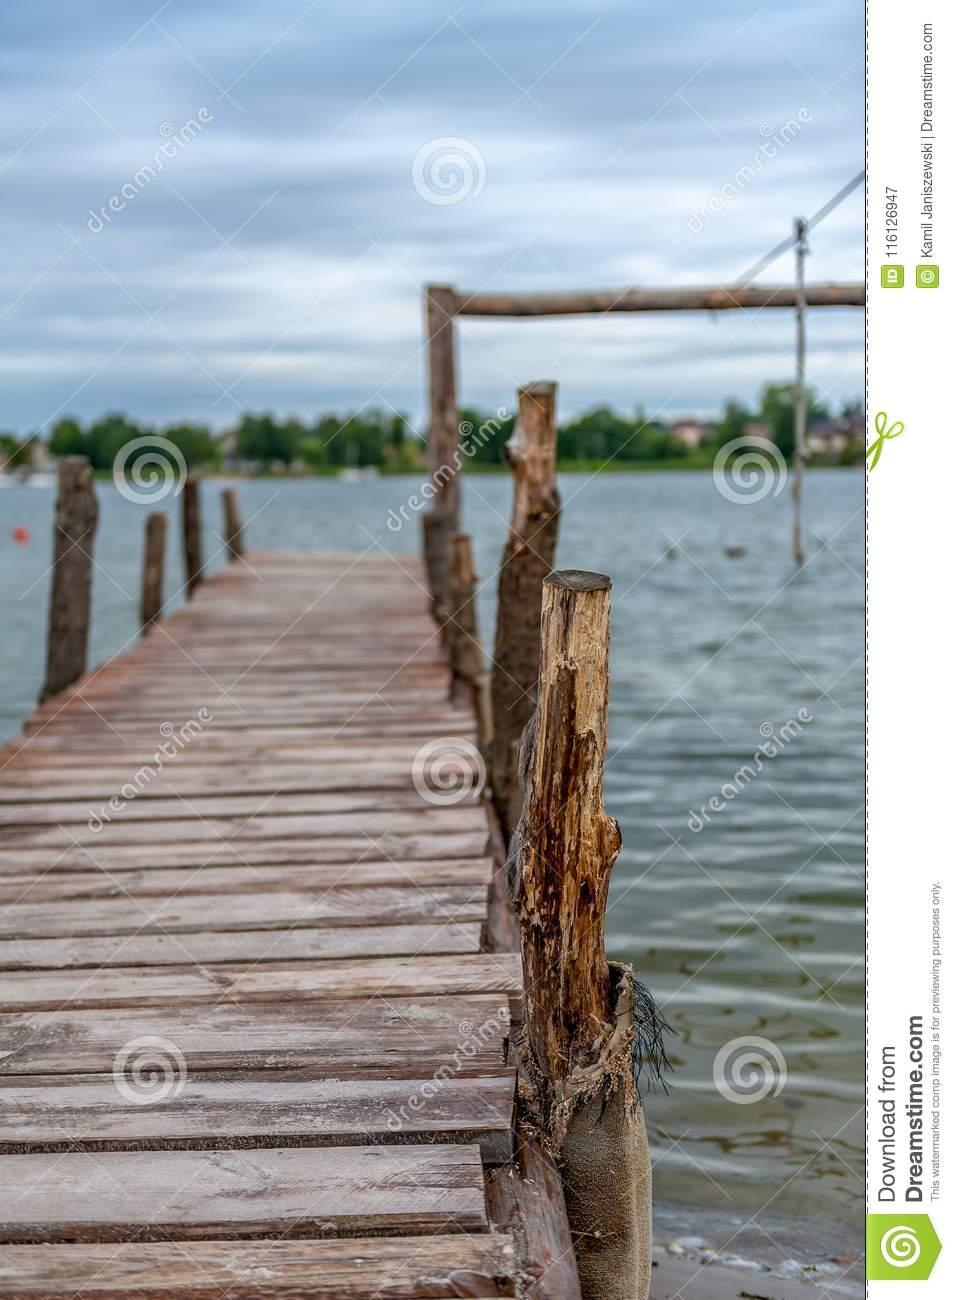 Old wooden pier with a lake in the background